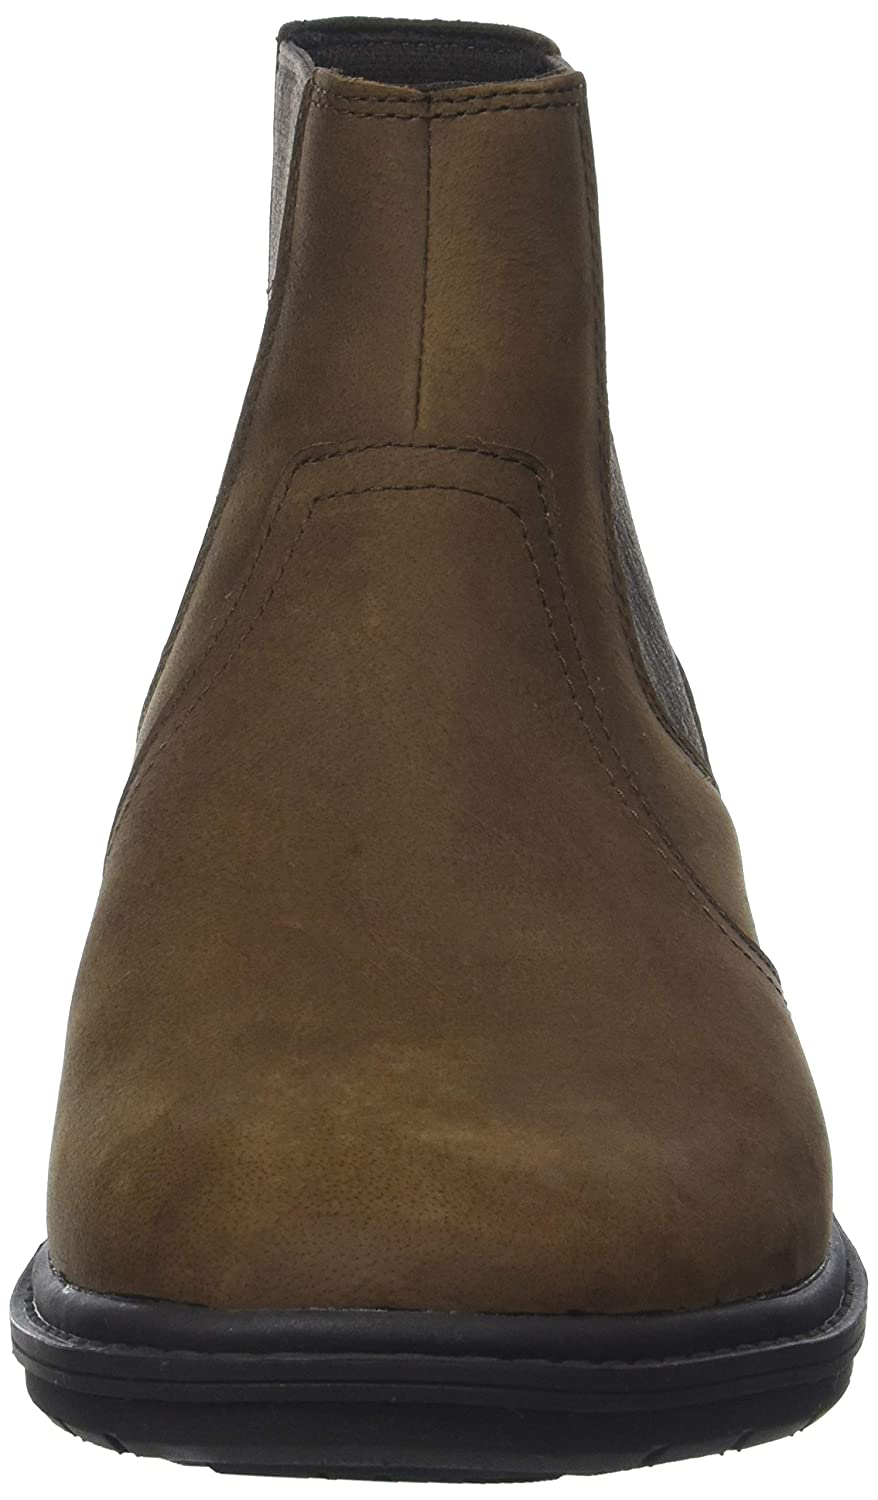 Sawyer Bags Classic co Timberland Lane BootsAmazon Men's ukShoesamp; nyvmO0N8wP